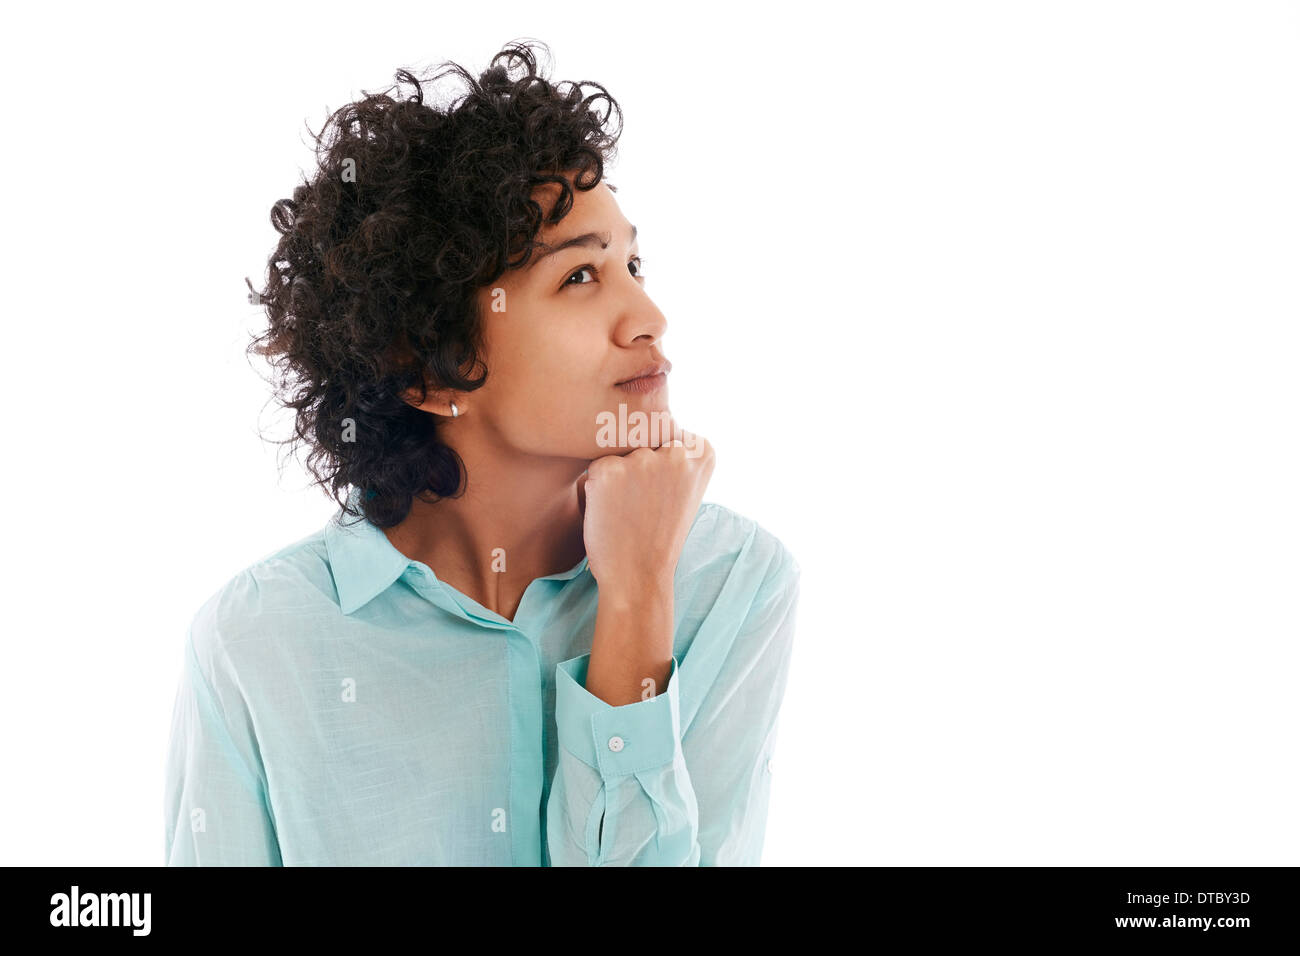 Portrait of confused and uncertain hispanic business woman on white background - Stock Image